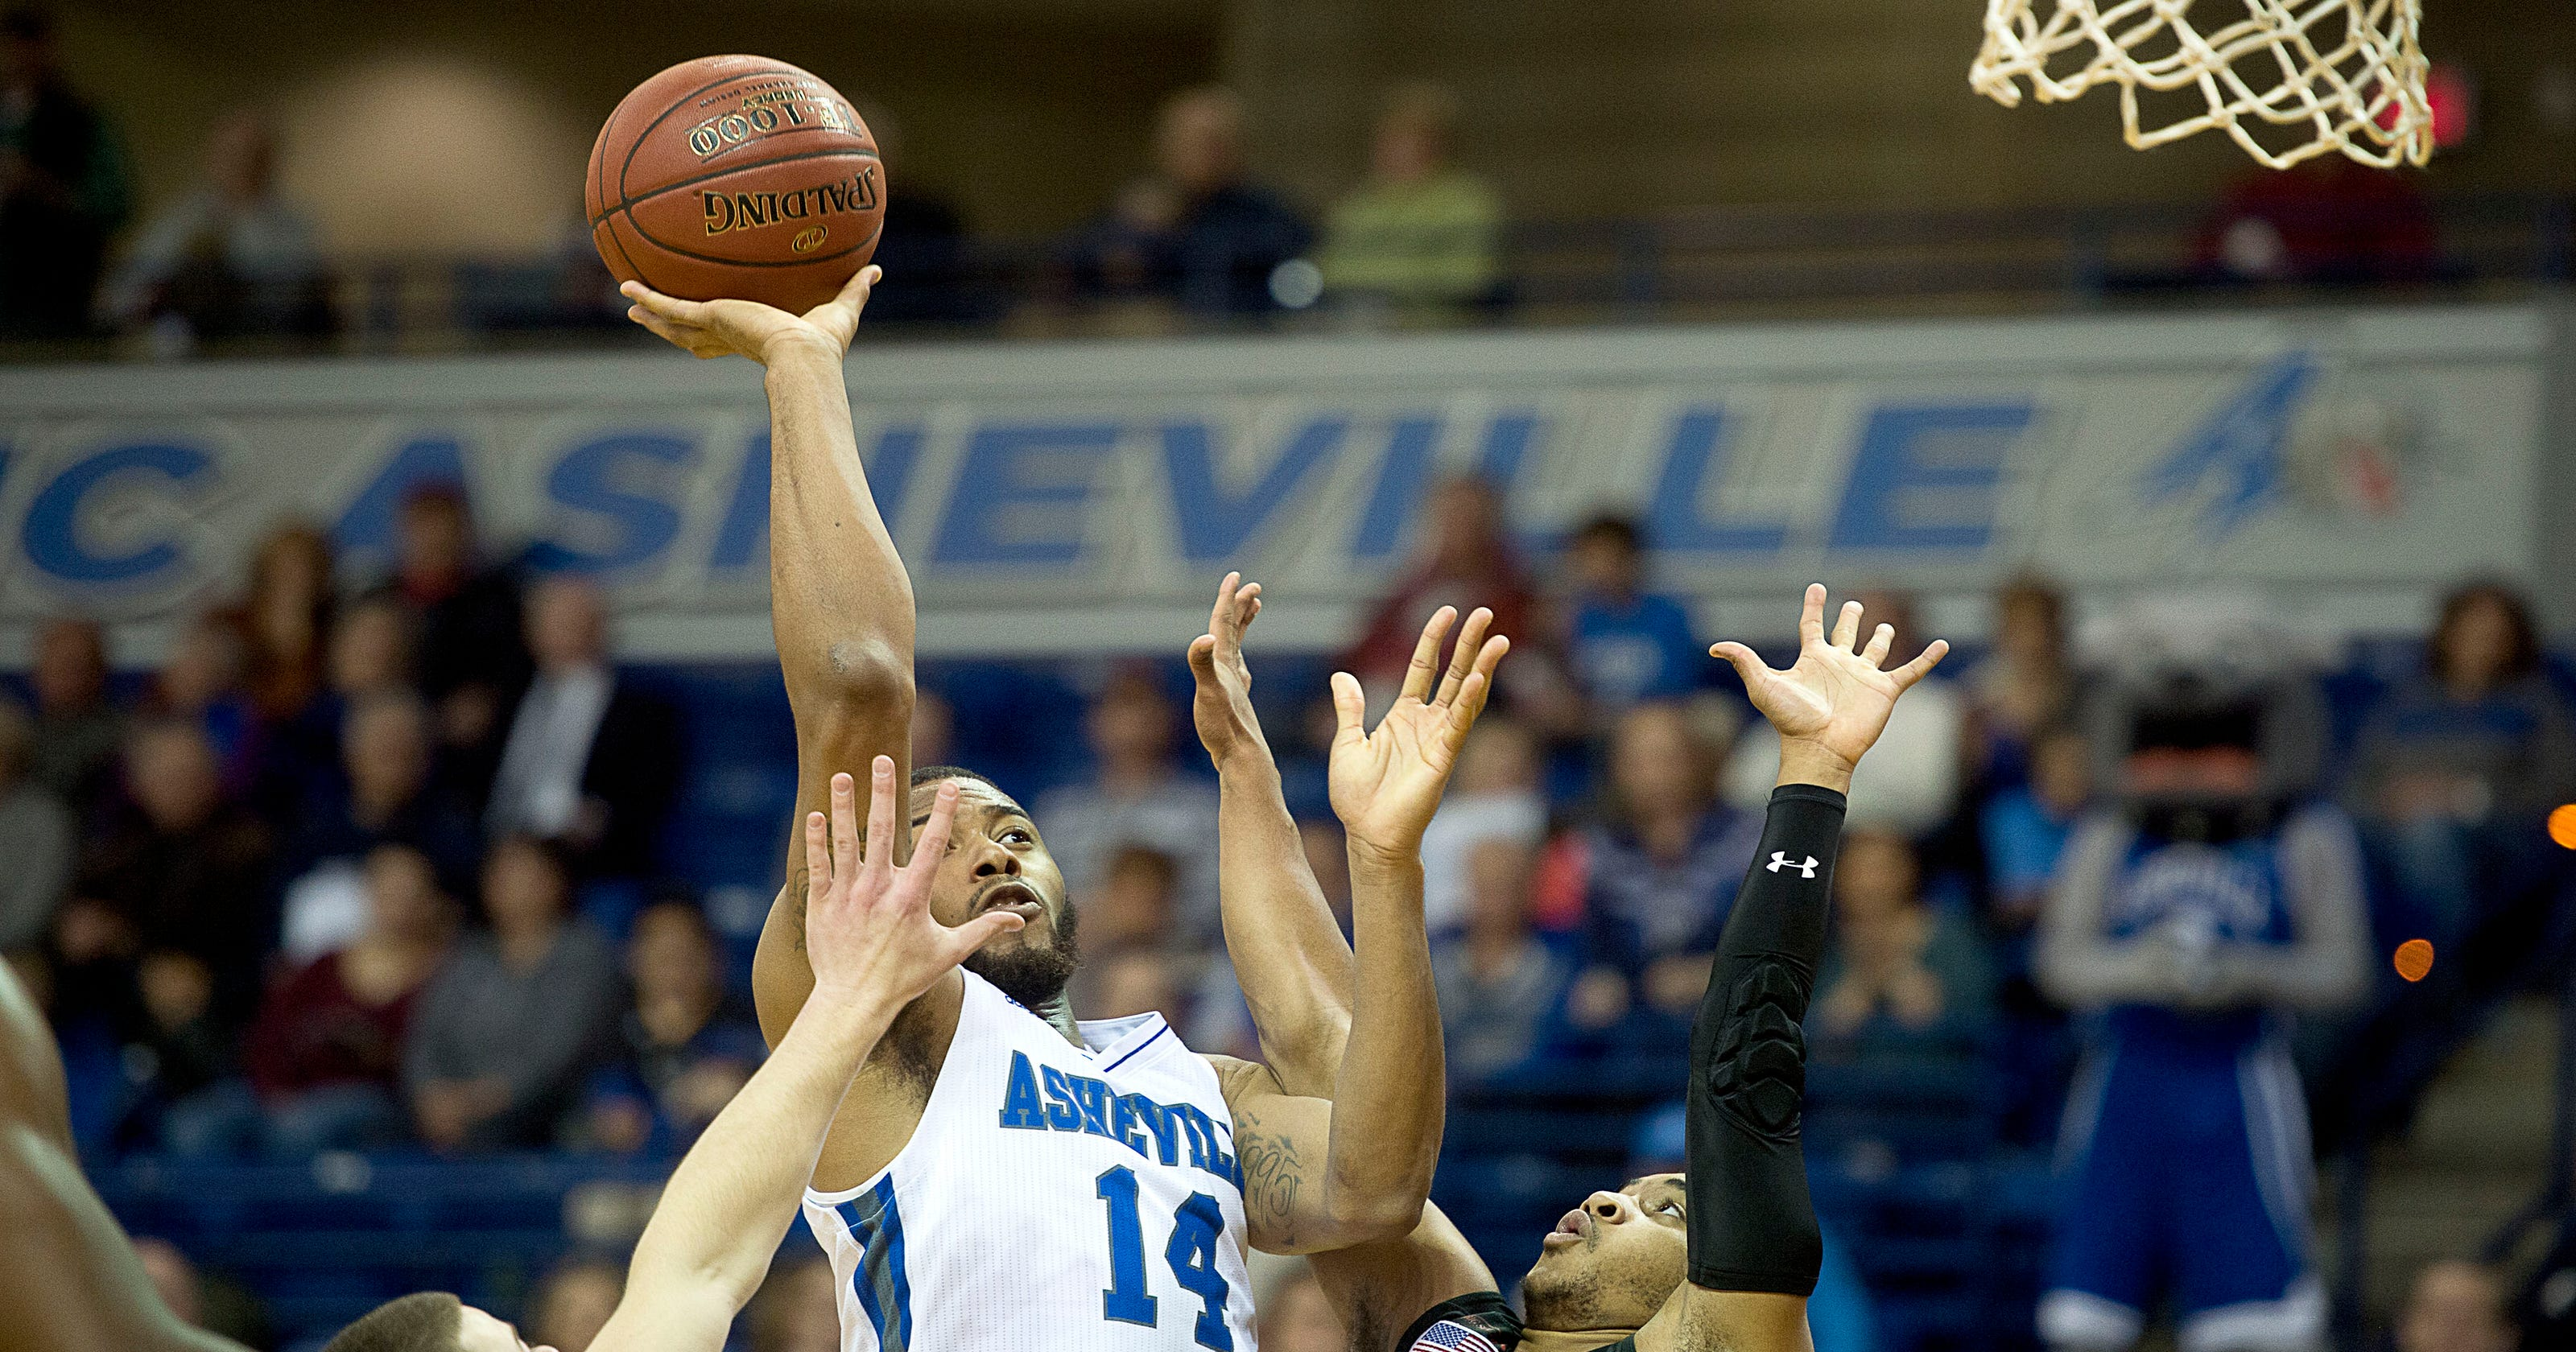 e46e2f50c UNC Asheville eager for second second shot at Winthrop